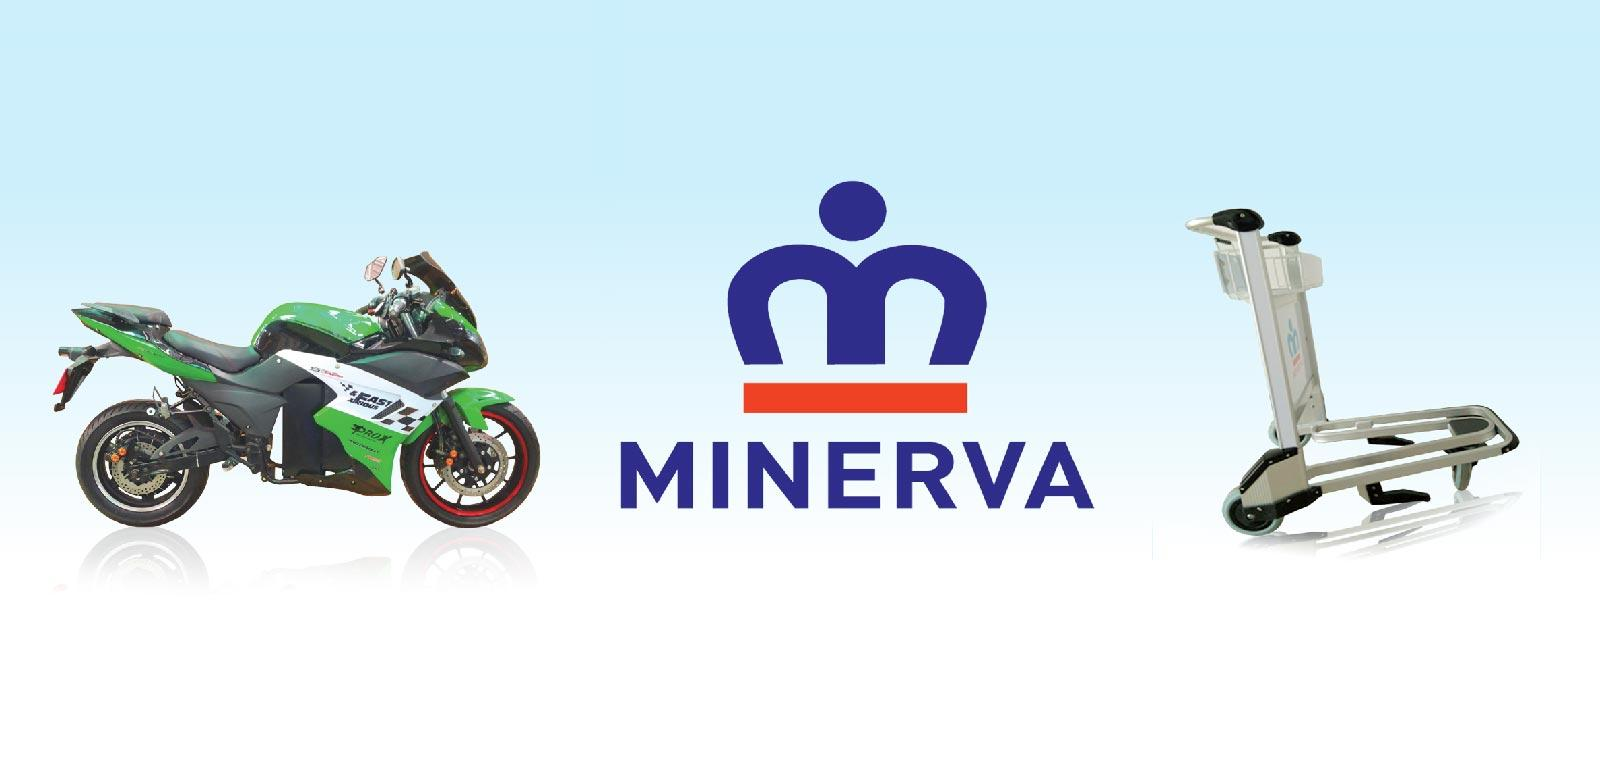 Minerva. At the center of your preference